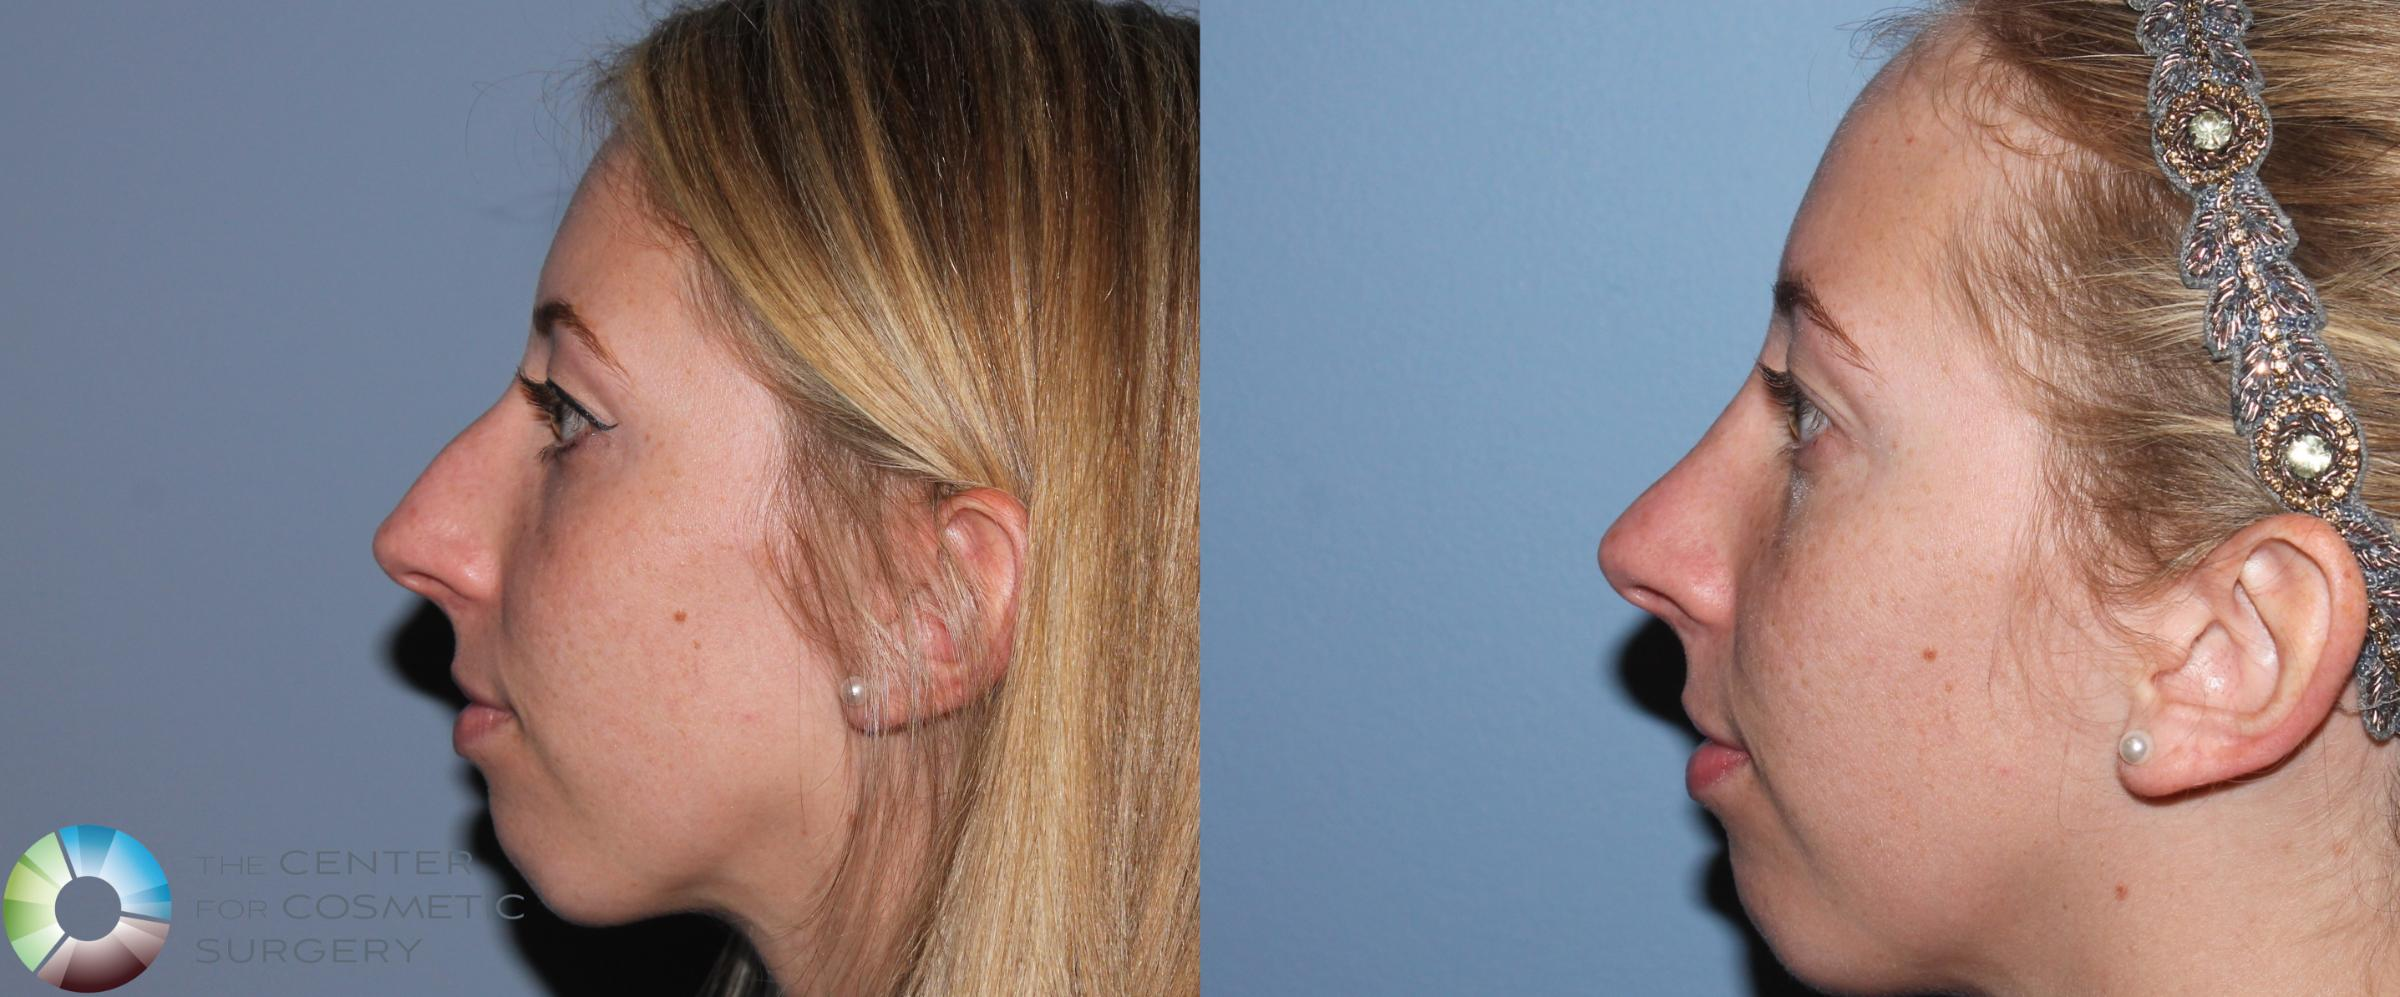 Rhinoplasty Case 788 Before & After View #1 | Golden, CO | The Center for Cosmetic Surgery